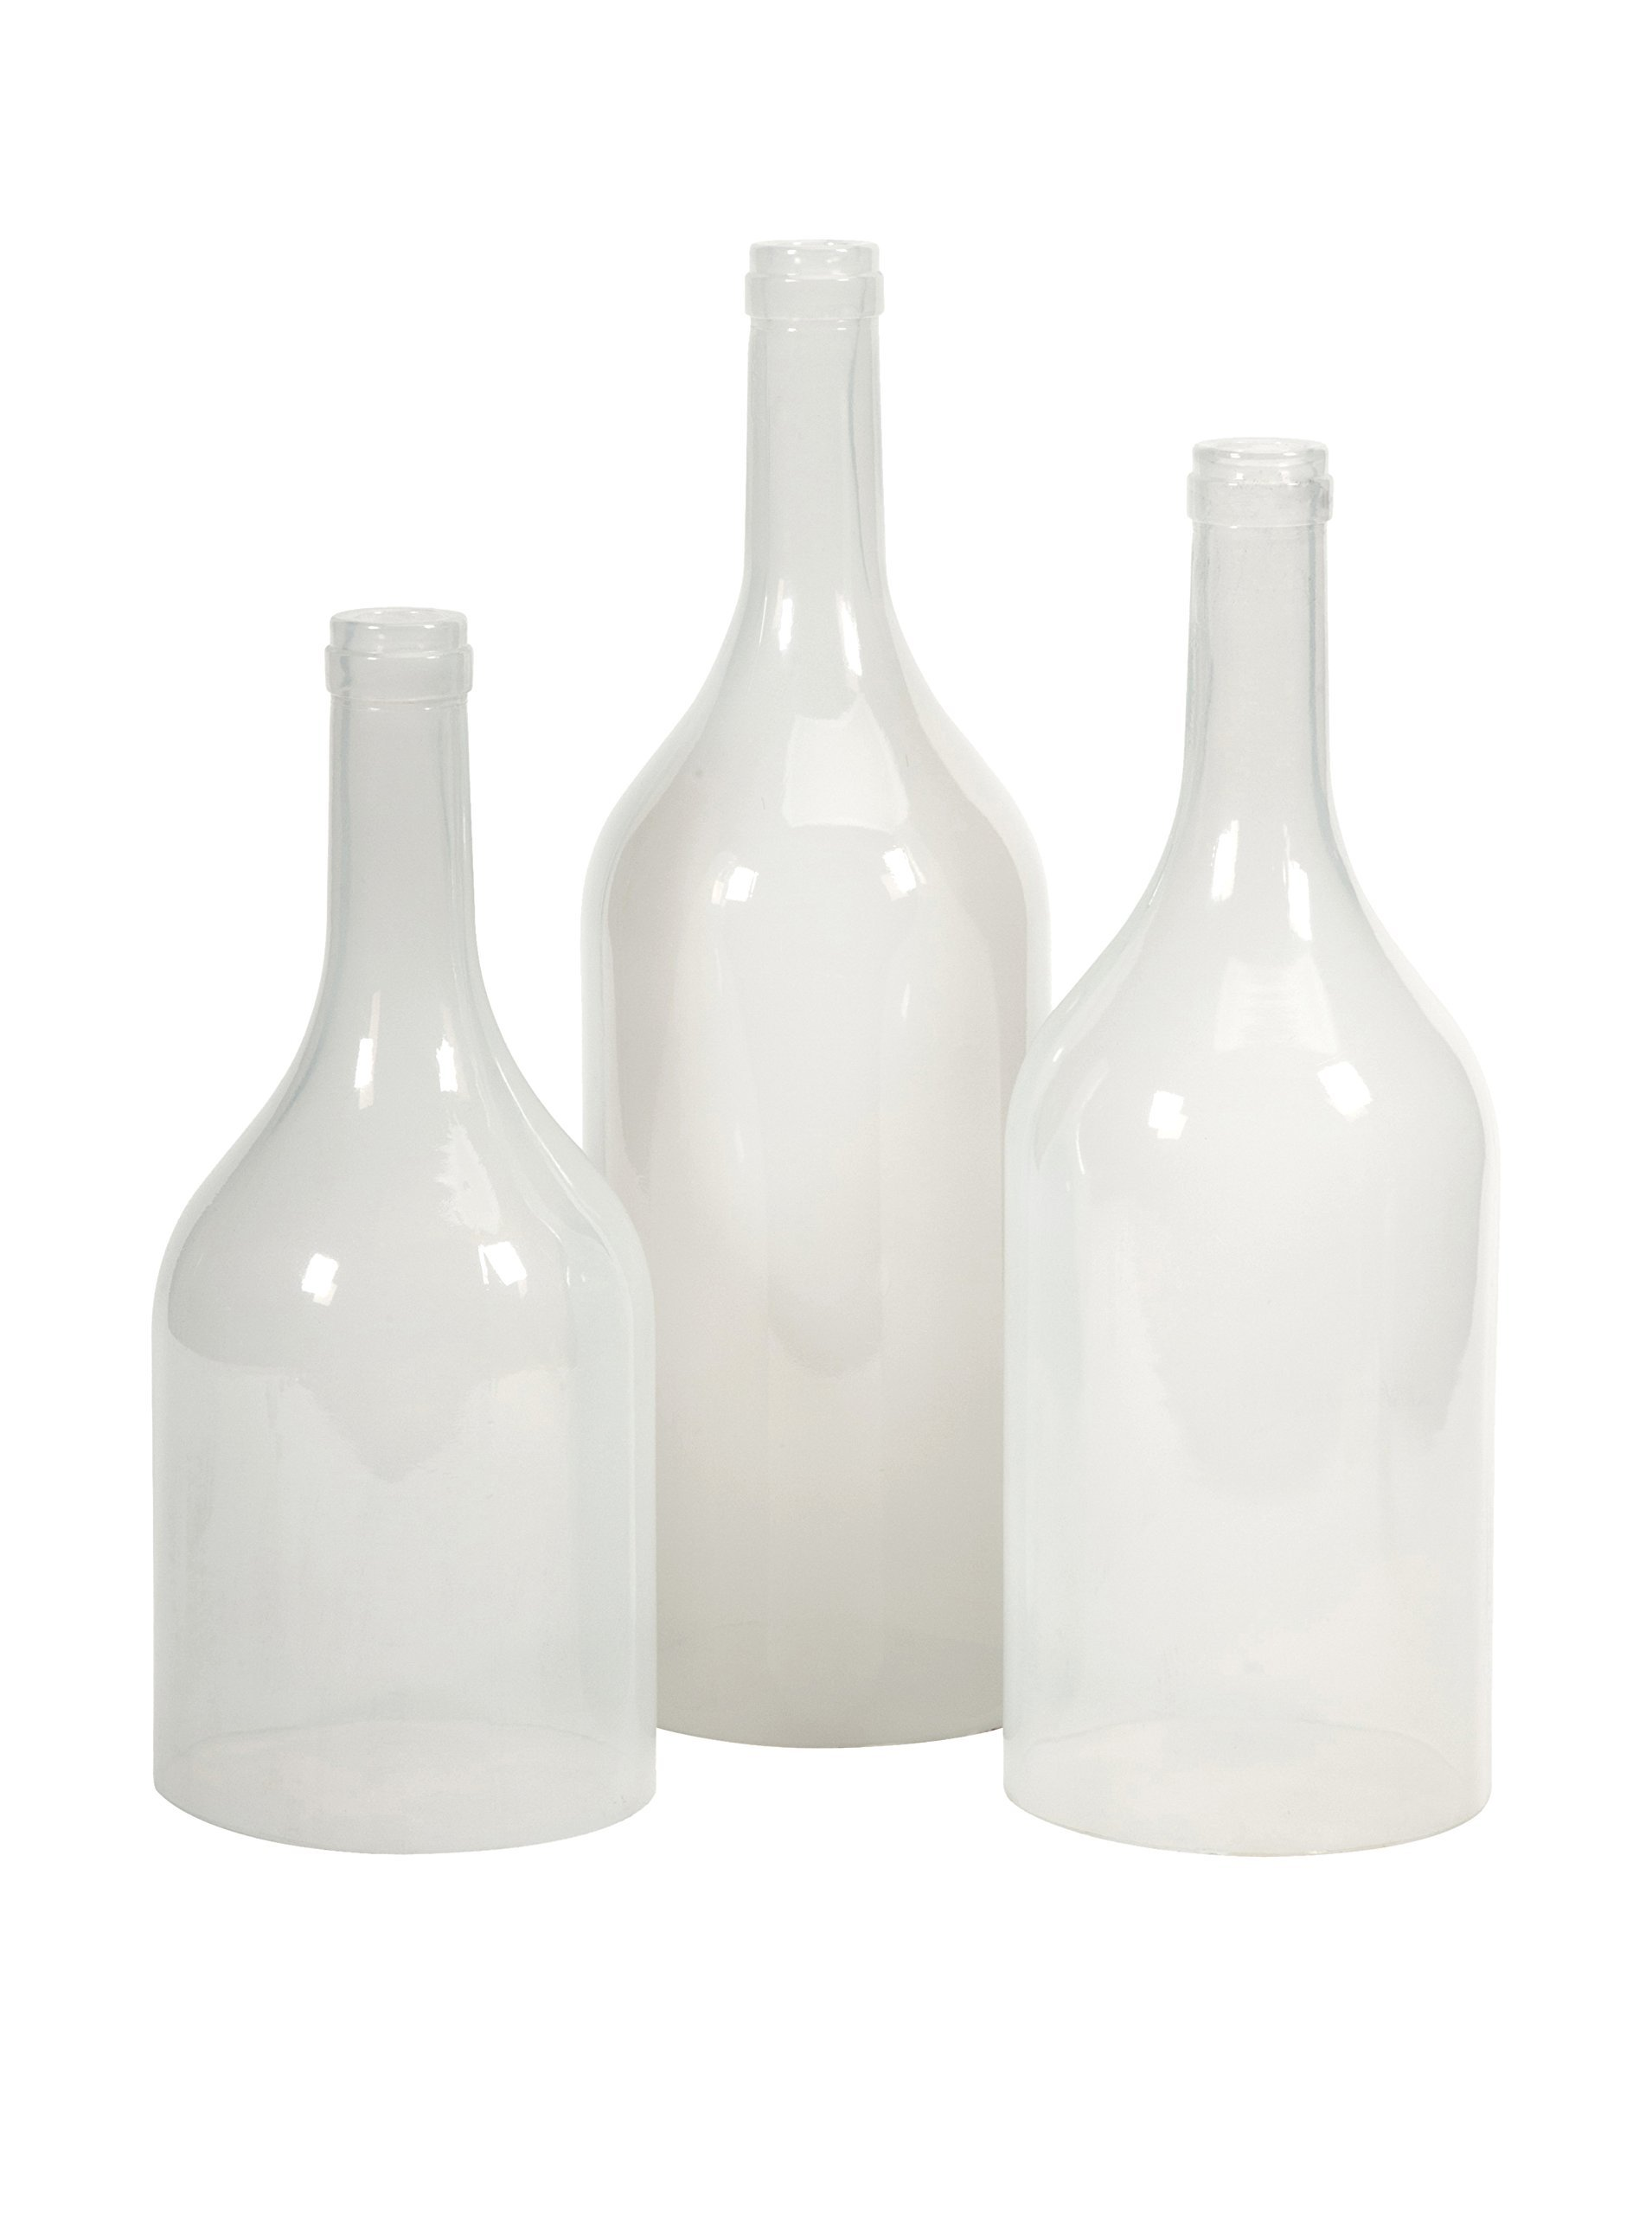 IMAX 97403-3 Monteith Cloche Bottles, Set of 3 by Imax